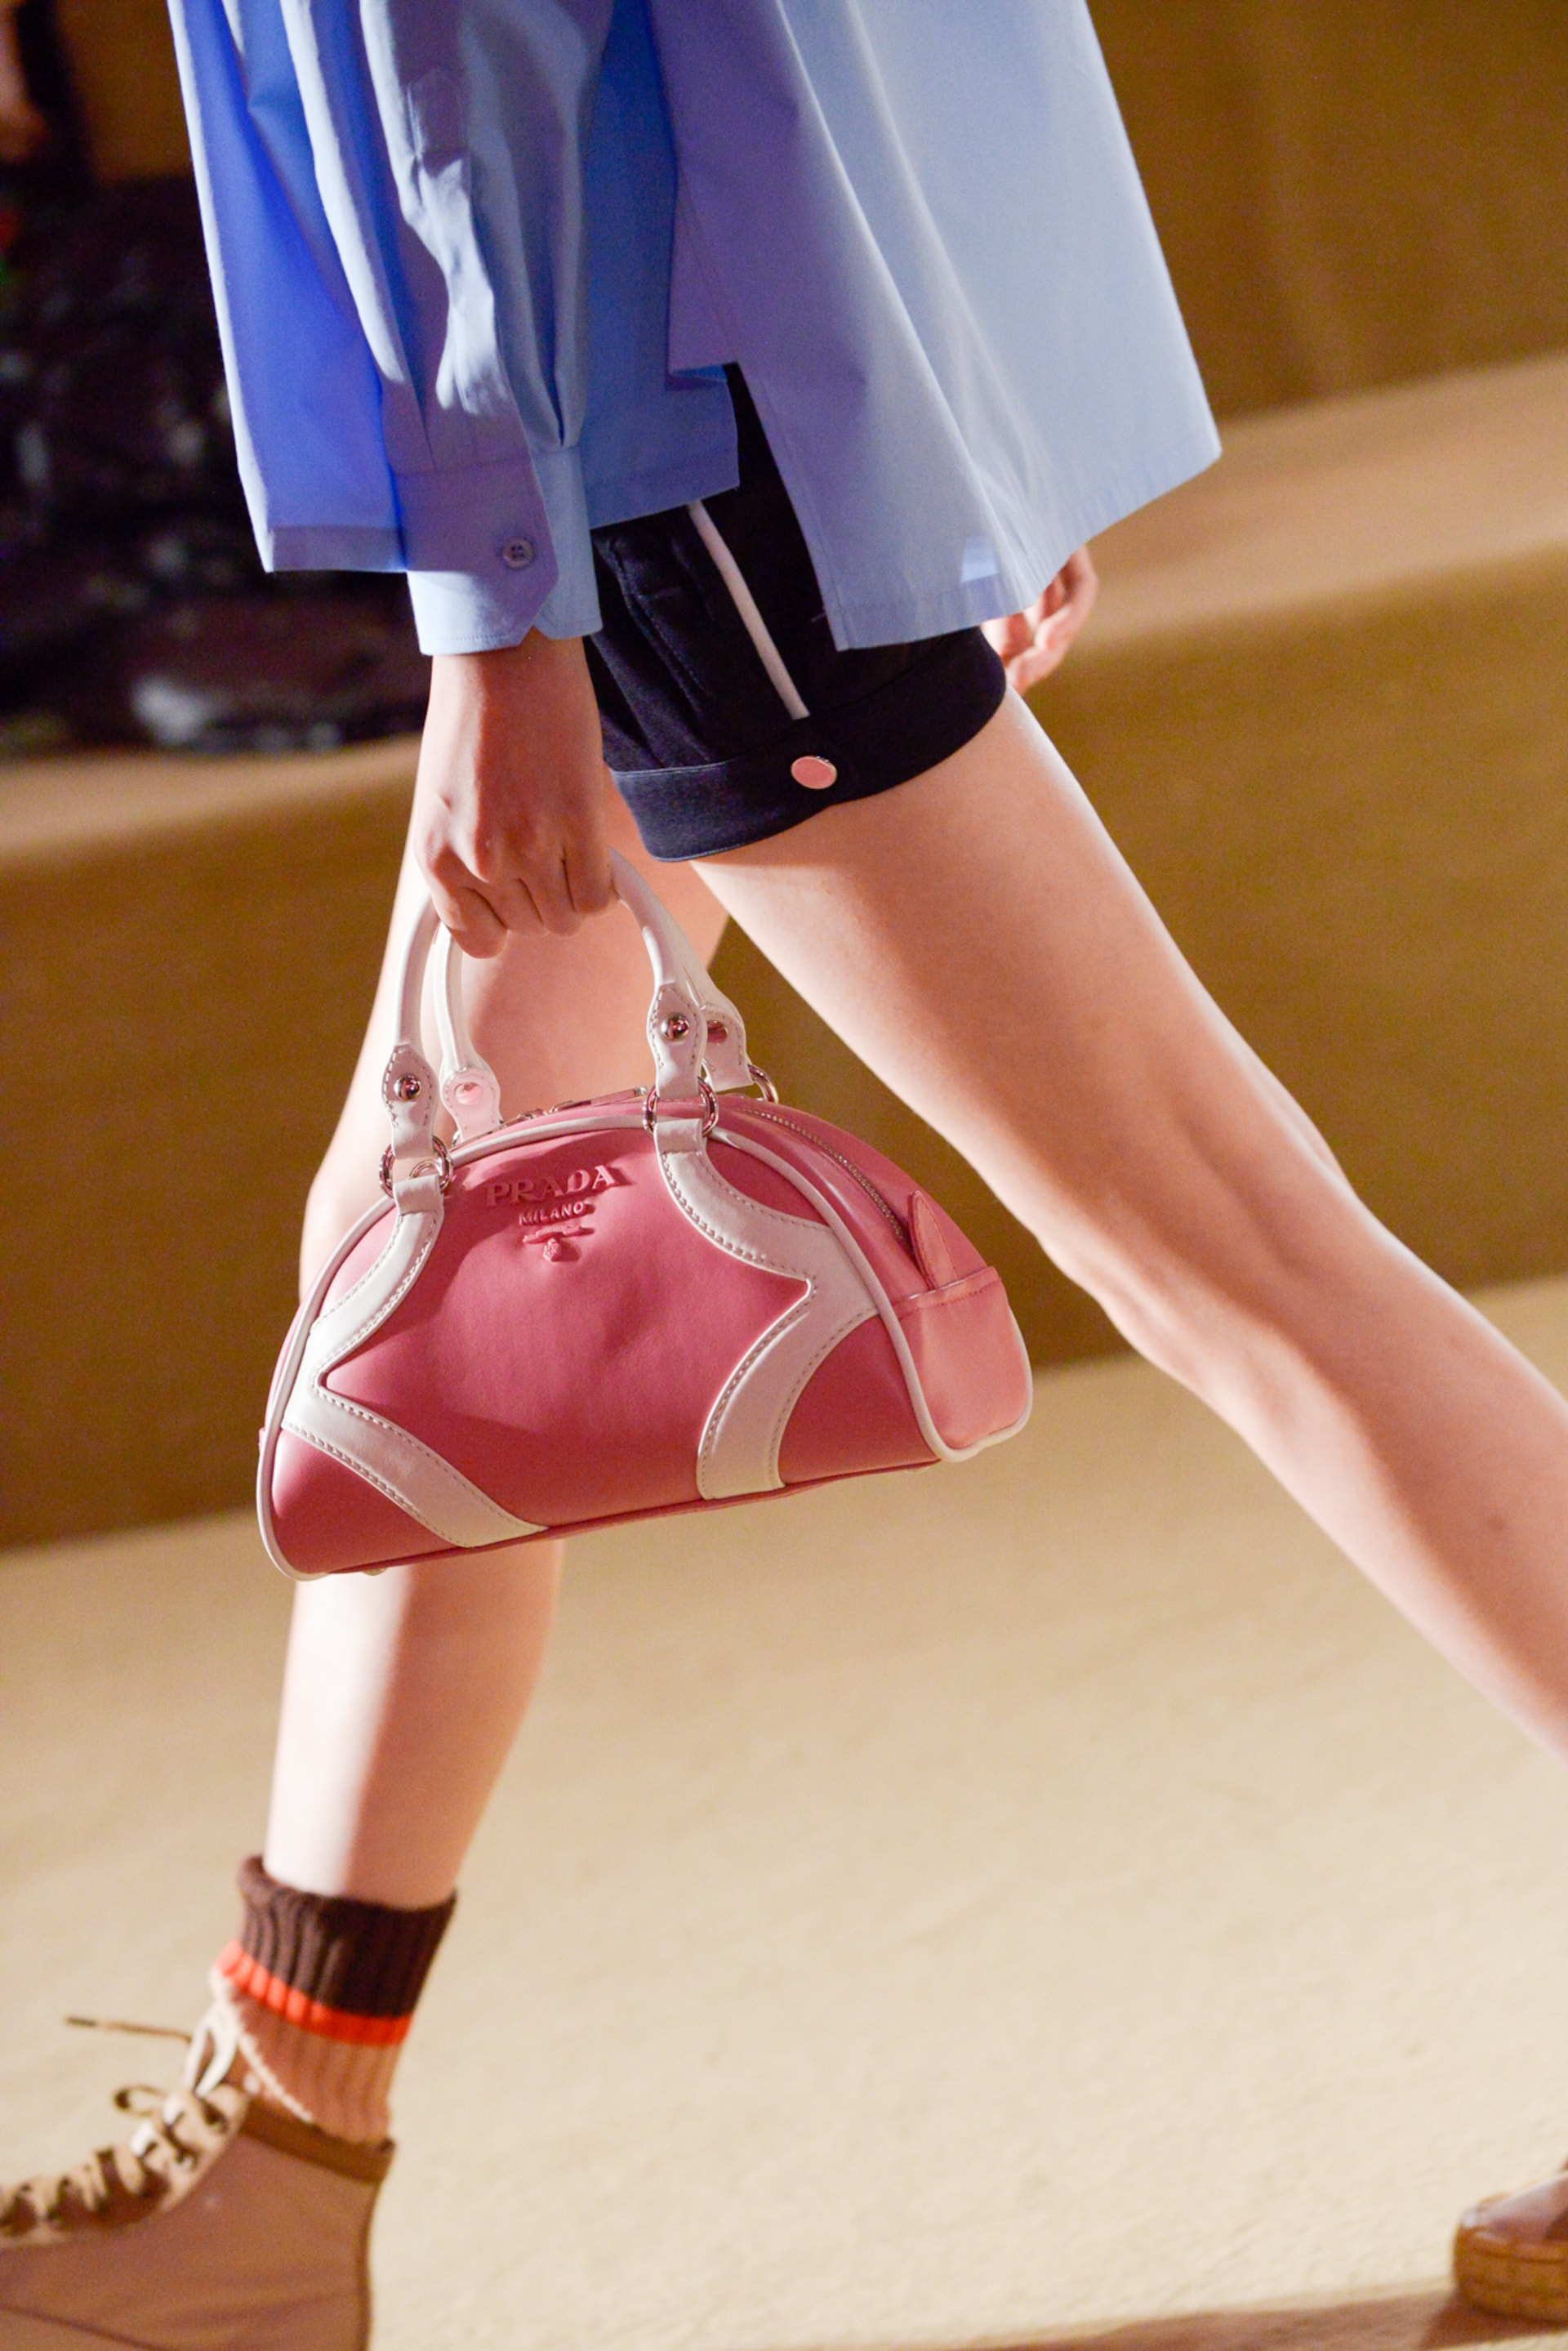 Prada Resort 2020 fashion show detail 4 with bowling bag